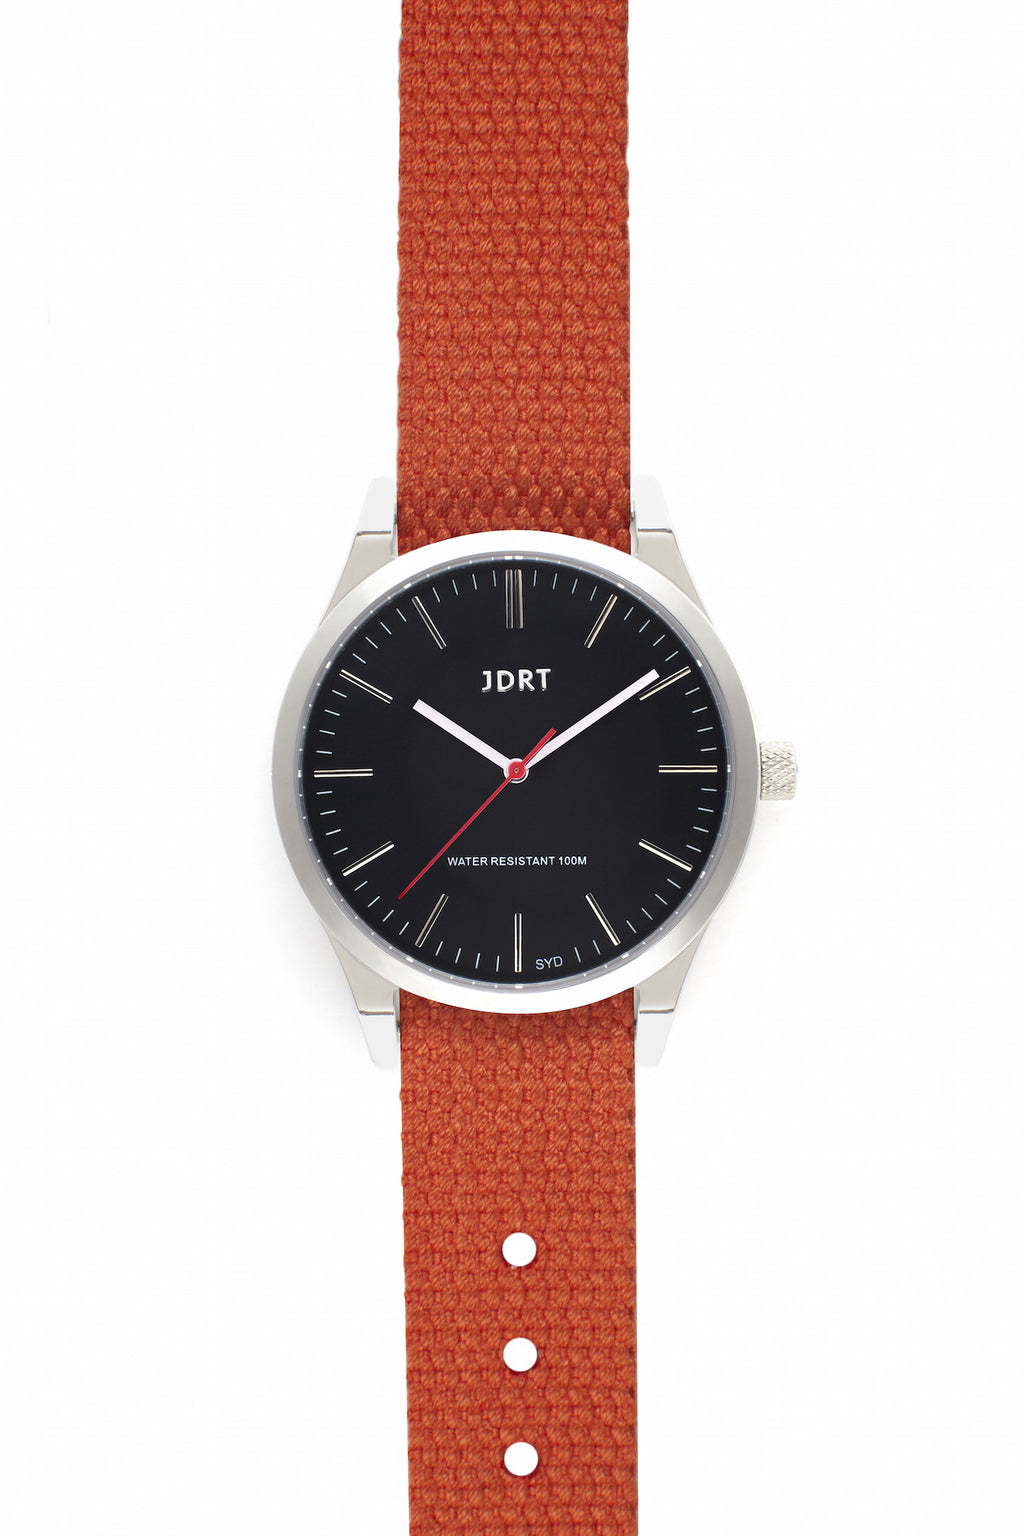 Jet Face with Mandarin Canvas Watch Band